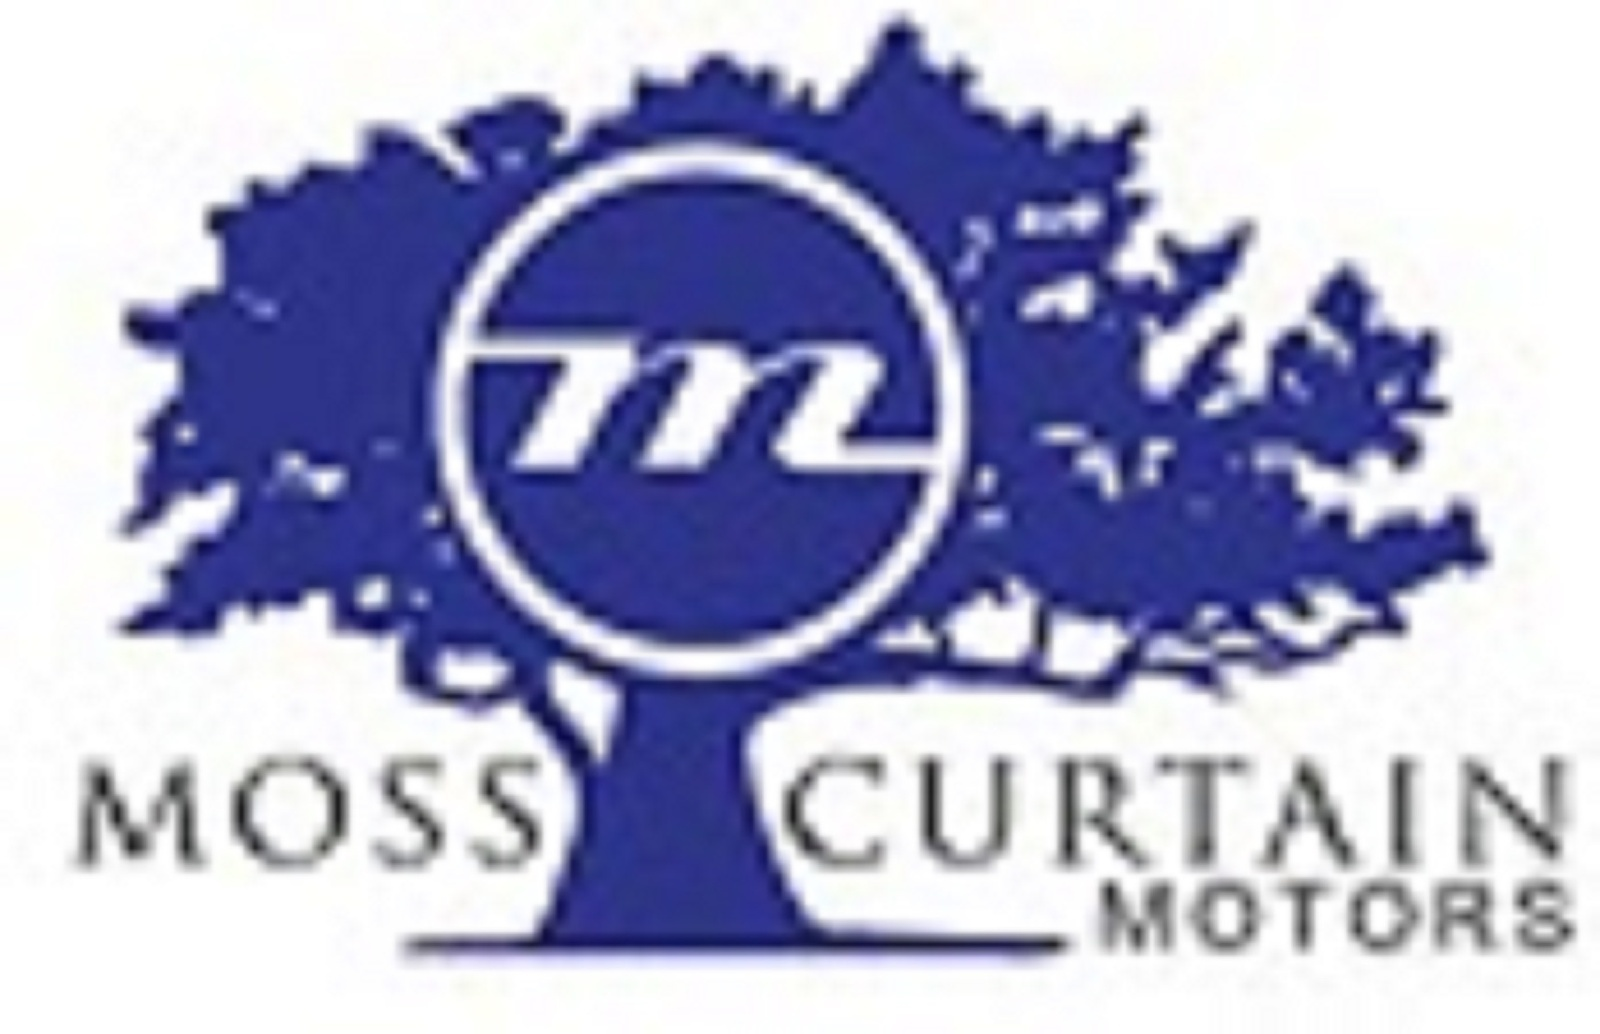 Moss Curtain Motors Savannah LLC